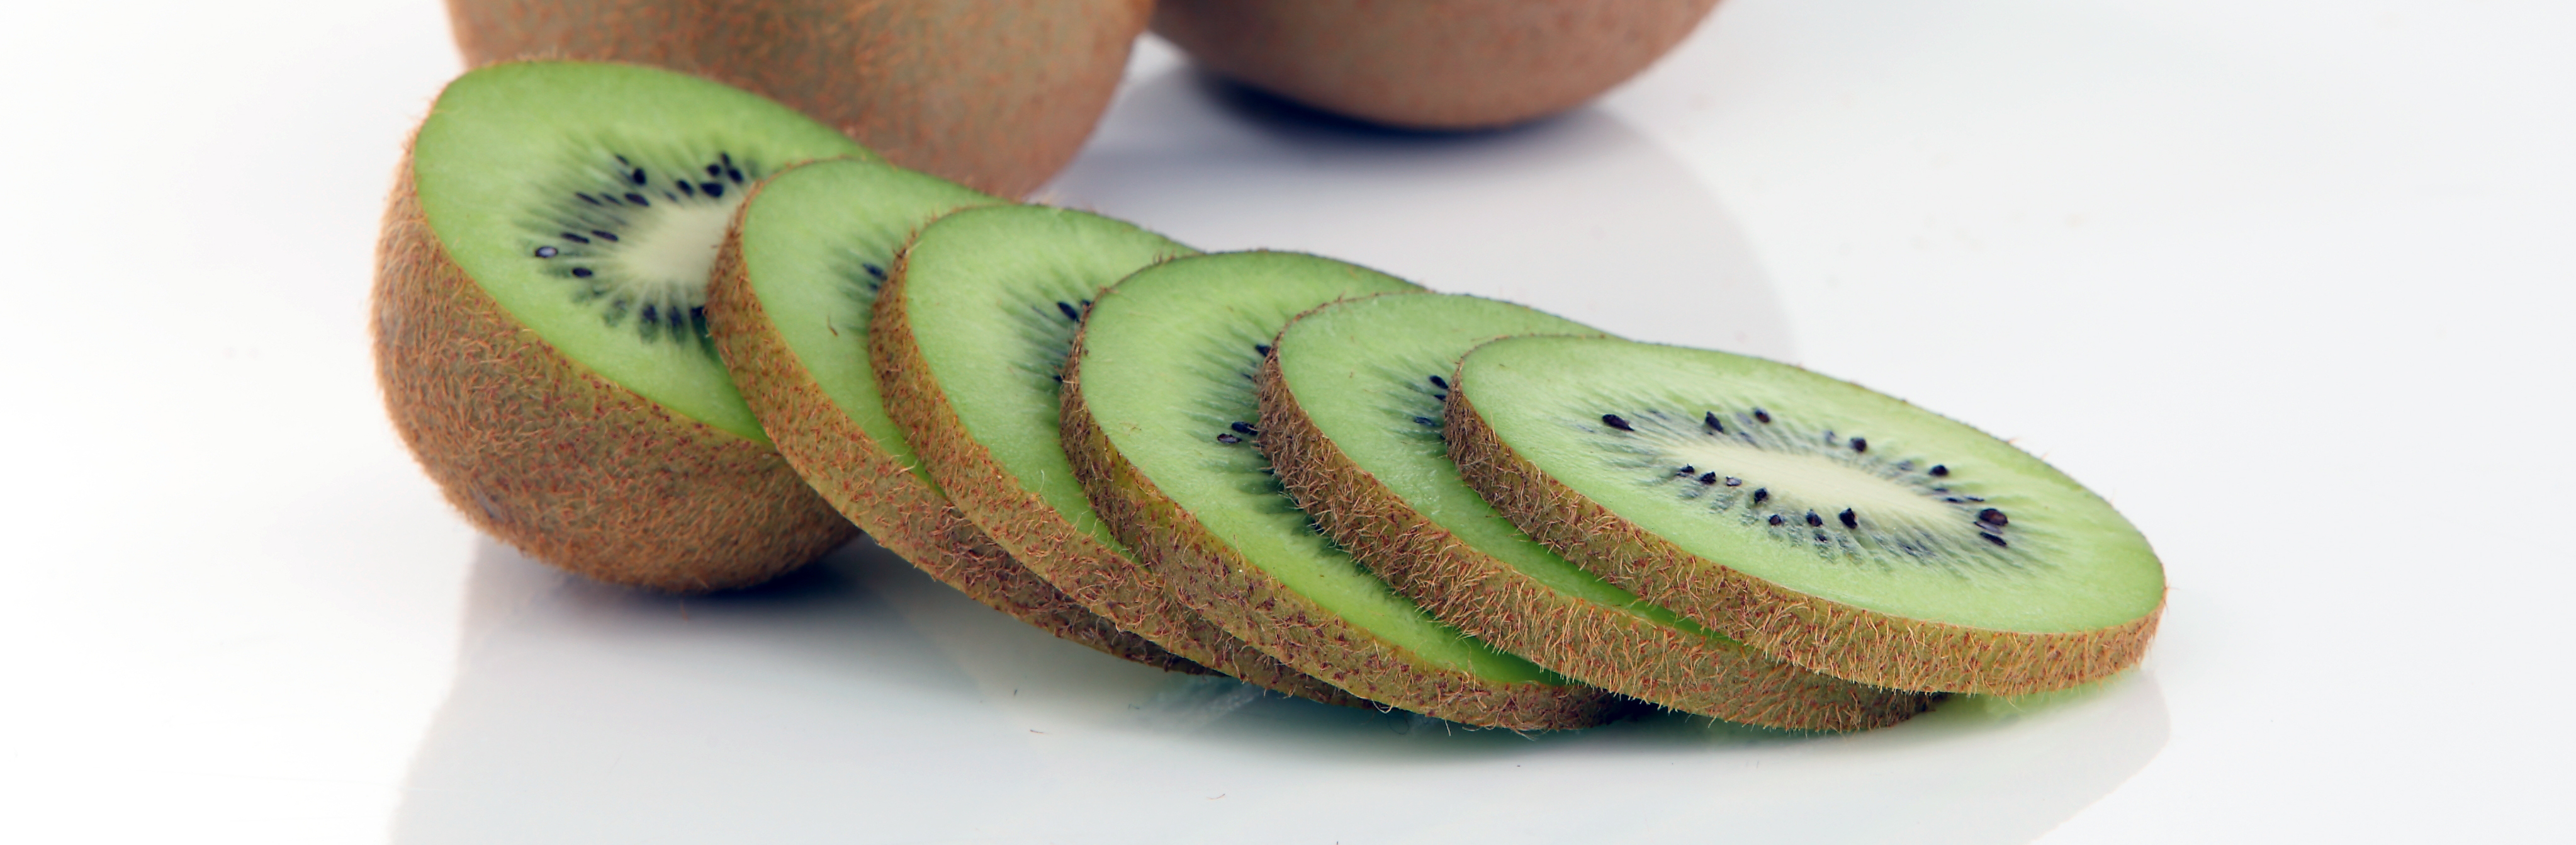 Kiwi fruit skin: is it edible?